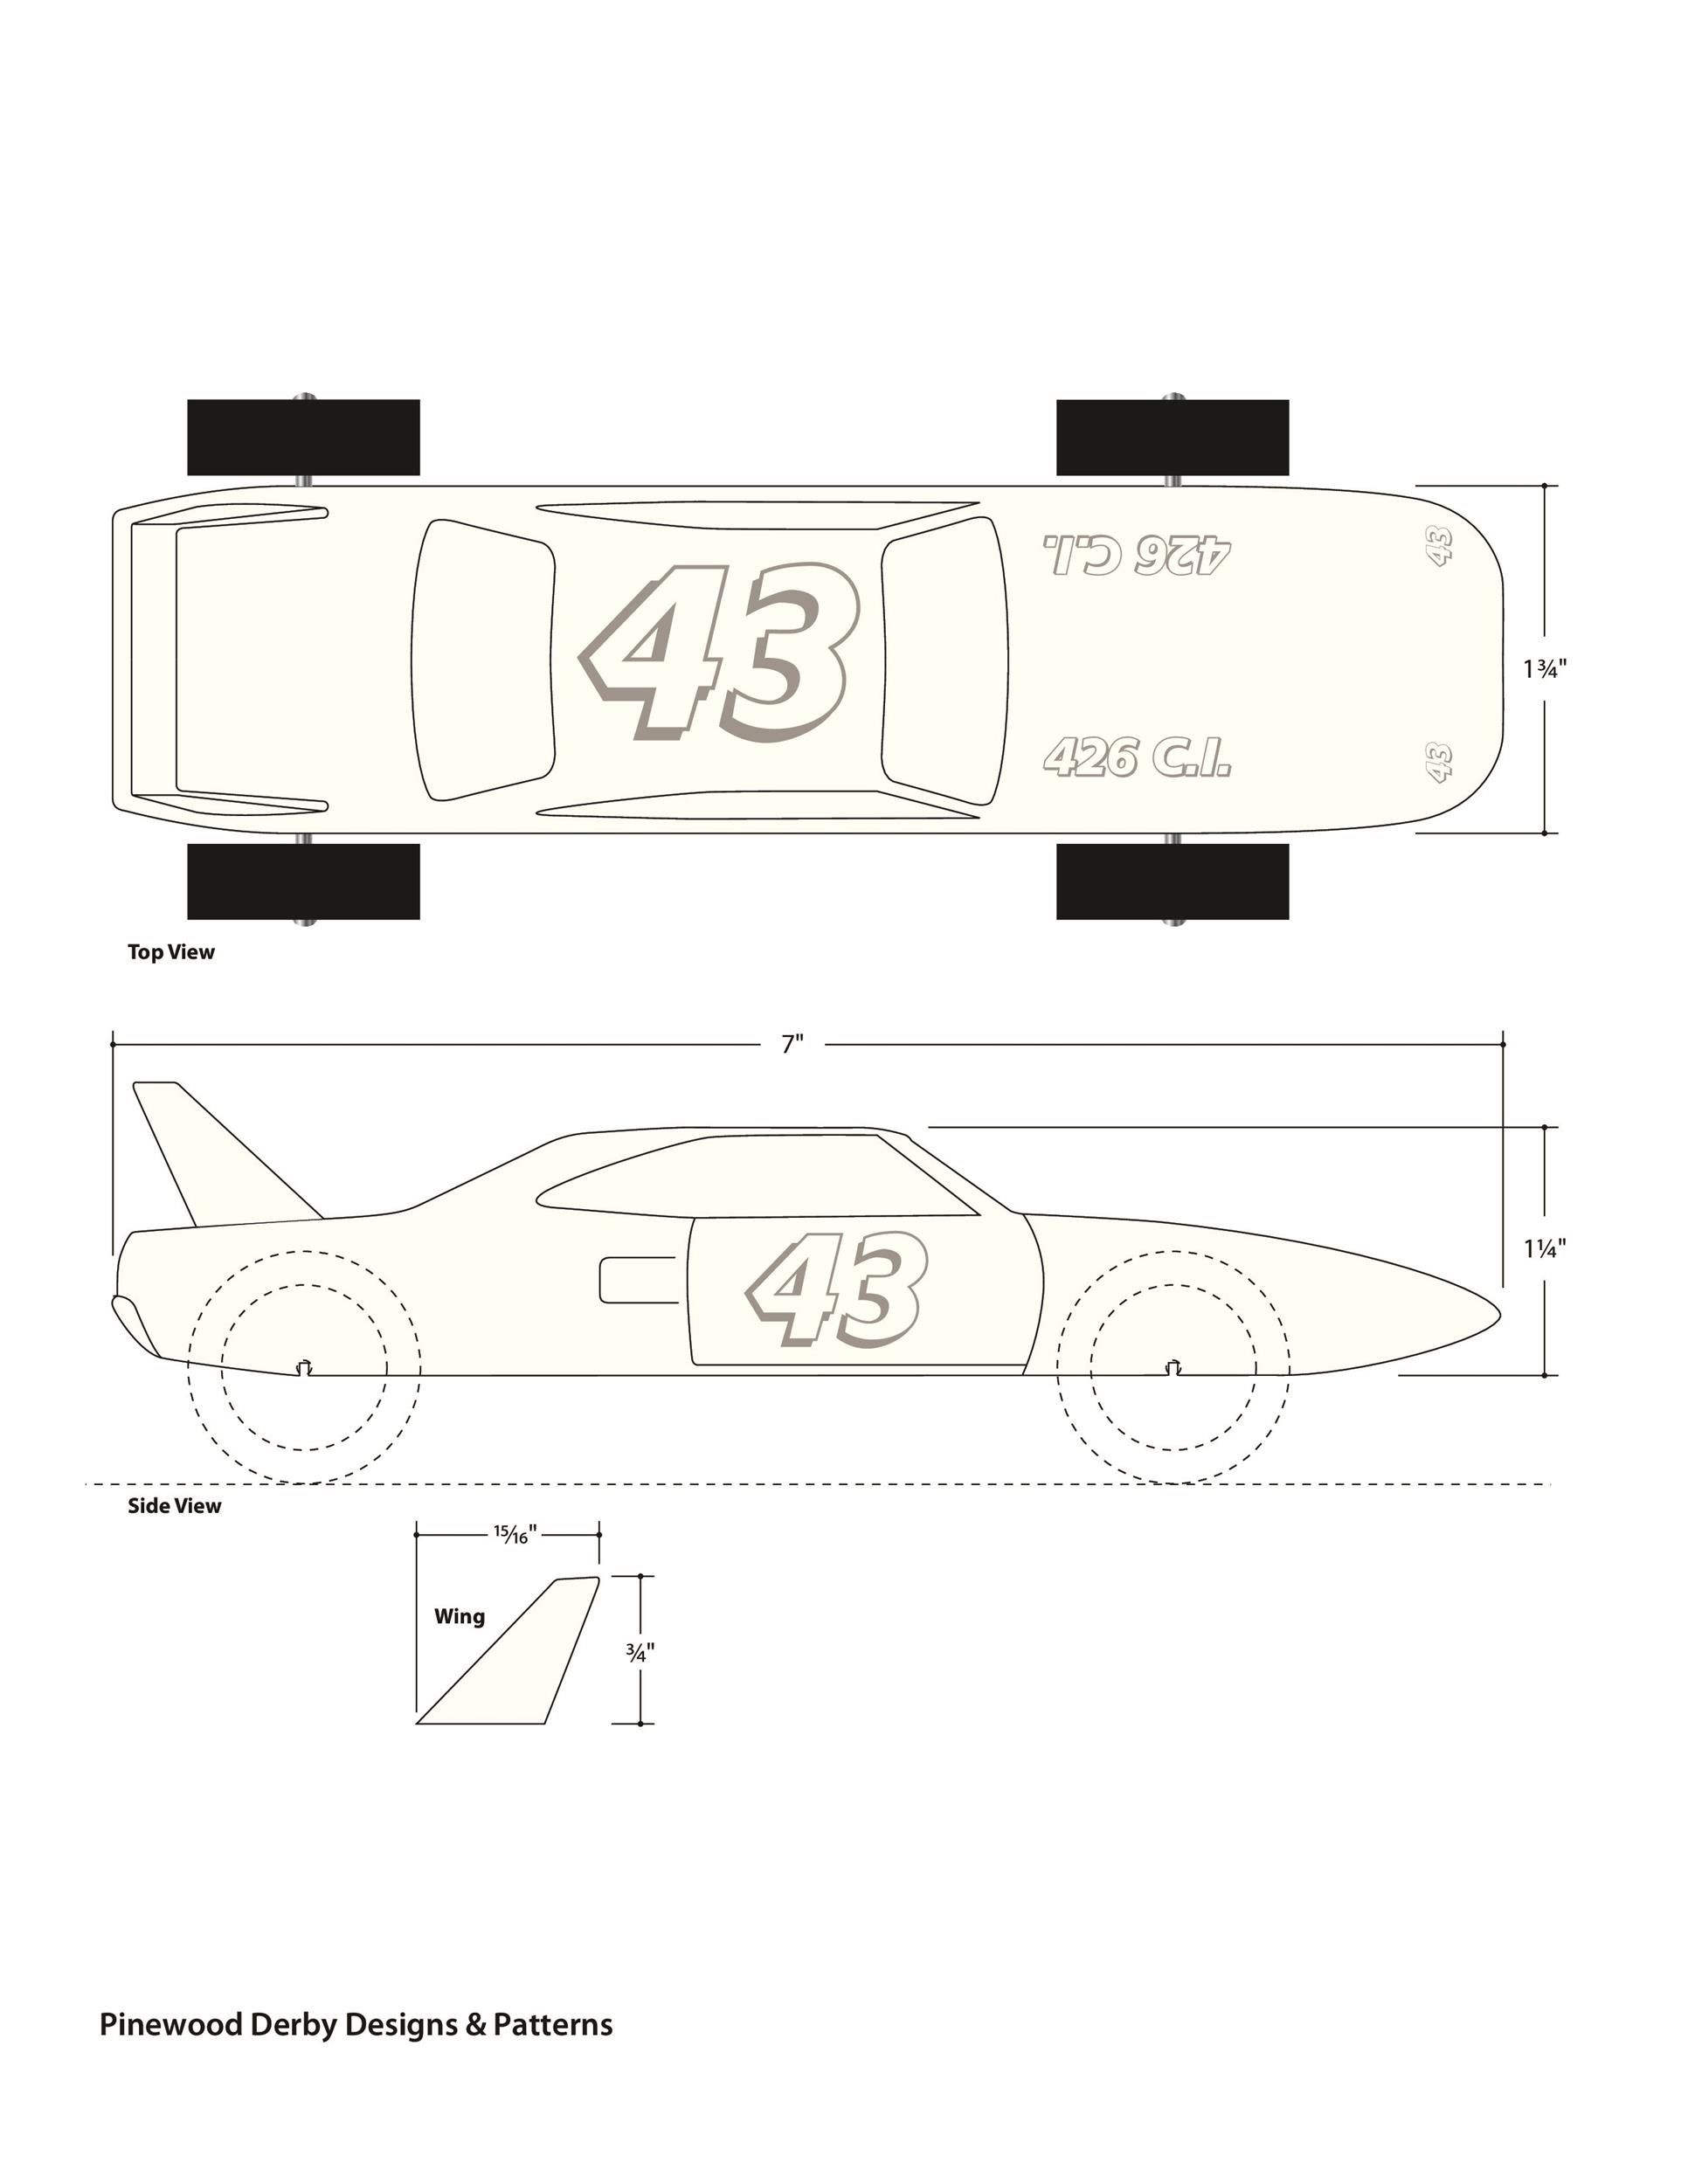 006 Dreaded Pinewood Derby Car Design Template Concept  Fast WedgeFull